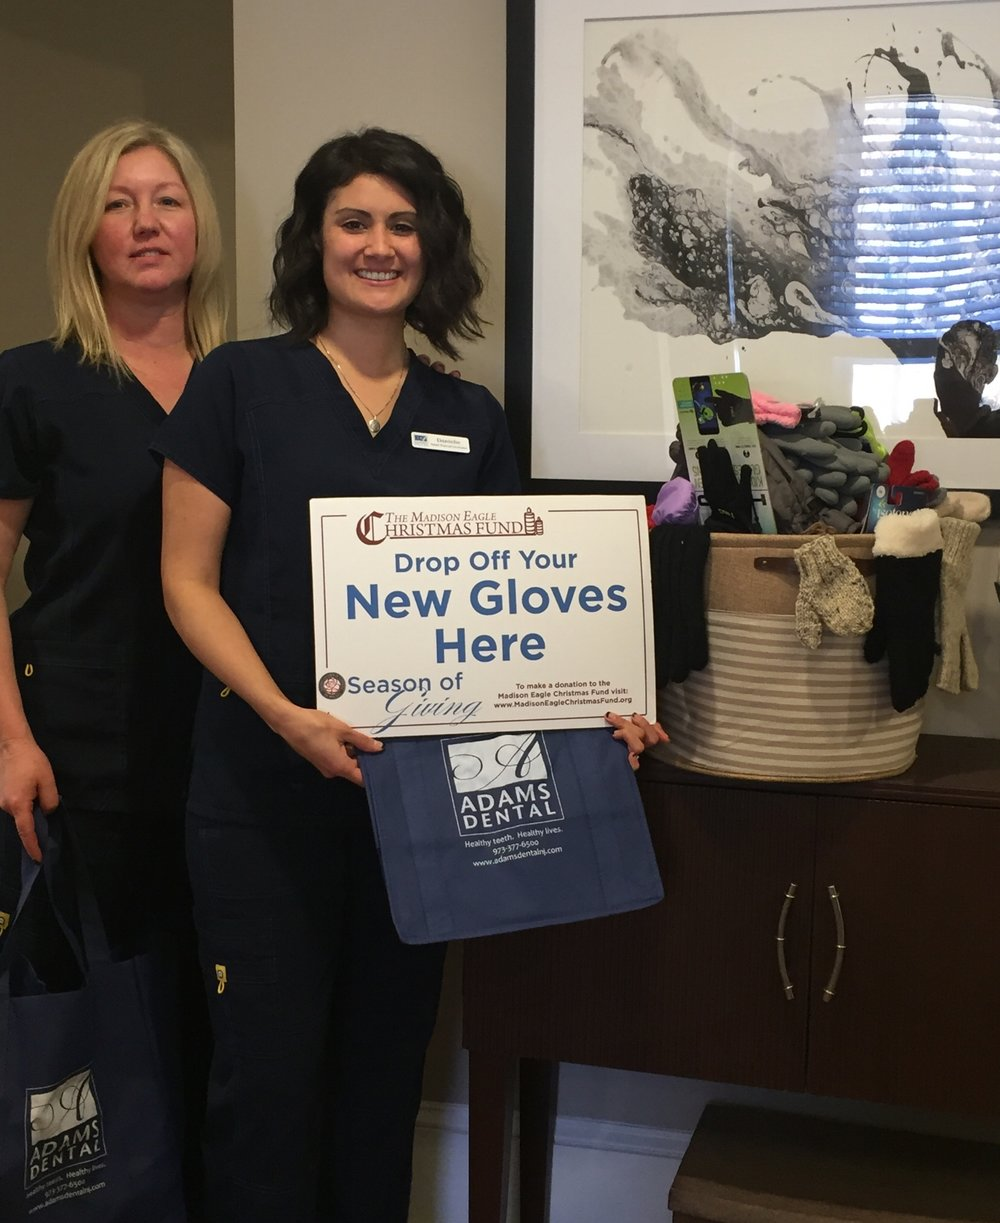 Among the many merchants who served as gift drop-off sites for donations to this year's Madison Eagle Christmas Fund was Adams Dental at 1 Kings Road in Madison.  Collecting new gloves for the Christmas Fund are Business Manager Jennifer Melton, left, and Registered Dental Assistant Danielle Wheelock.